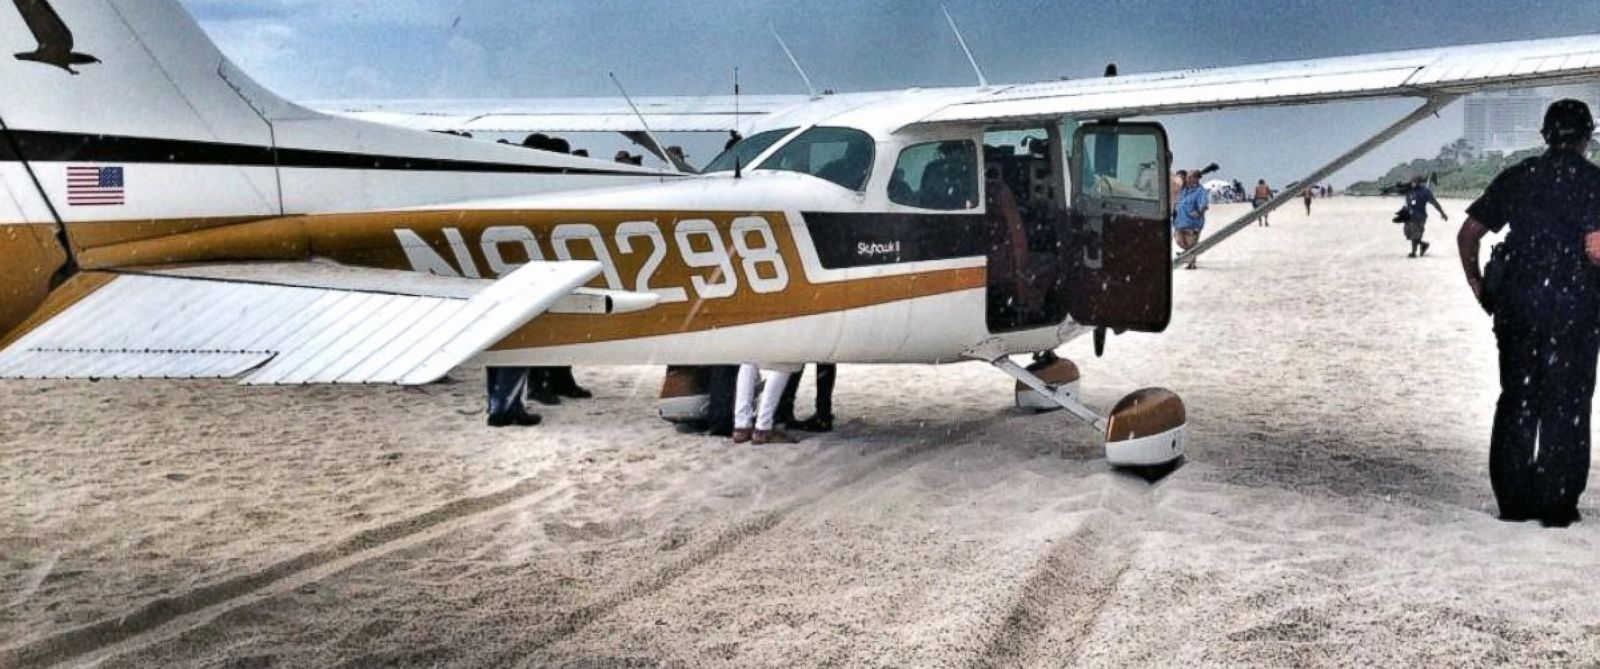 """PHOTO: Miami Beach Police tweeted this photo, July 29, 2014, with the text, """"#Plane makes emergency landing on beach right before storm.Pilot & 3 passengers safe. No injuries mechanical failure."""""""